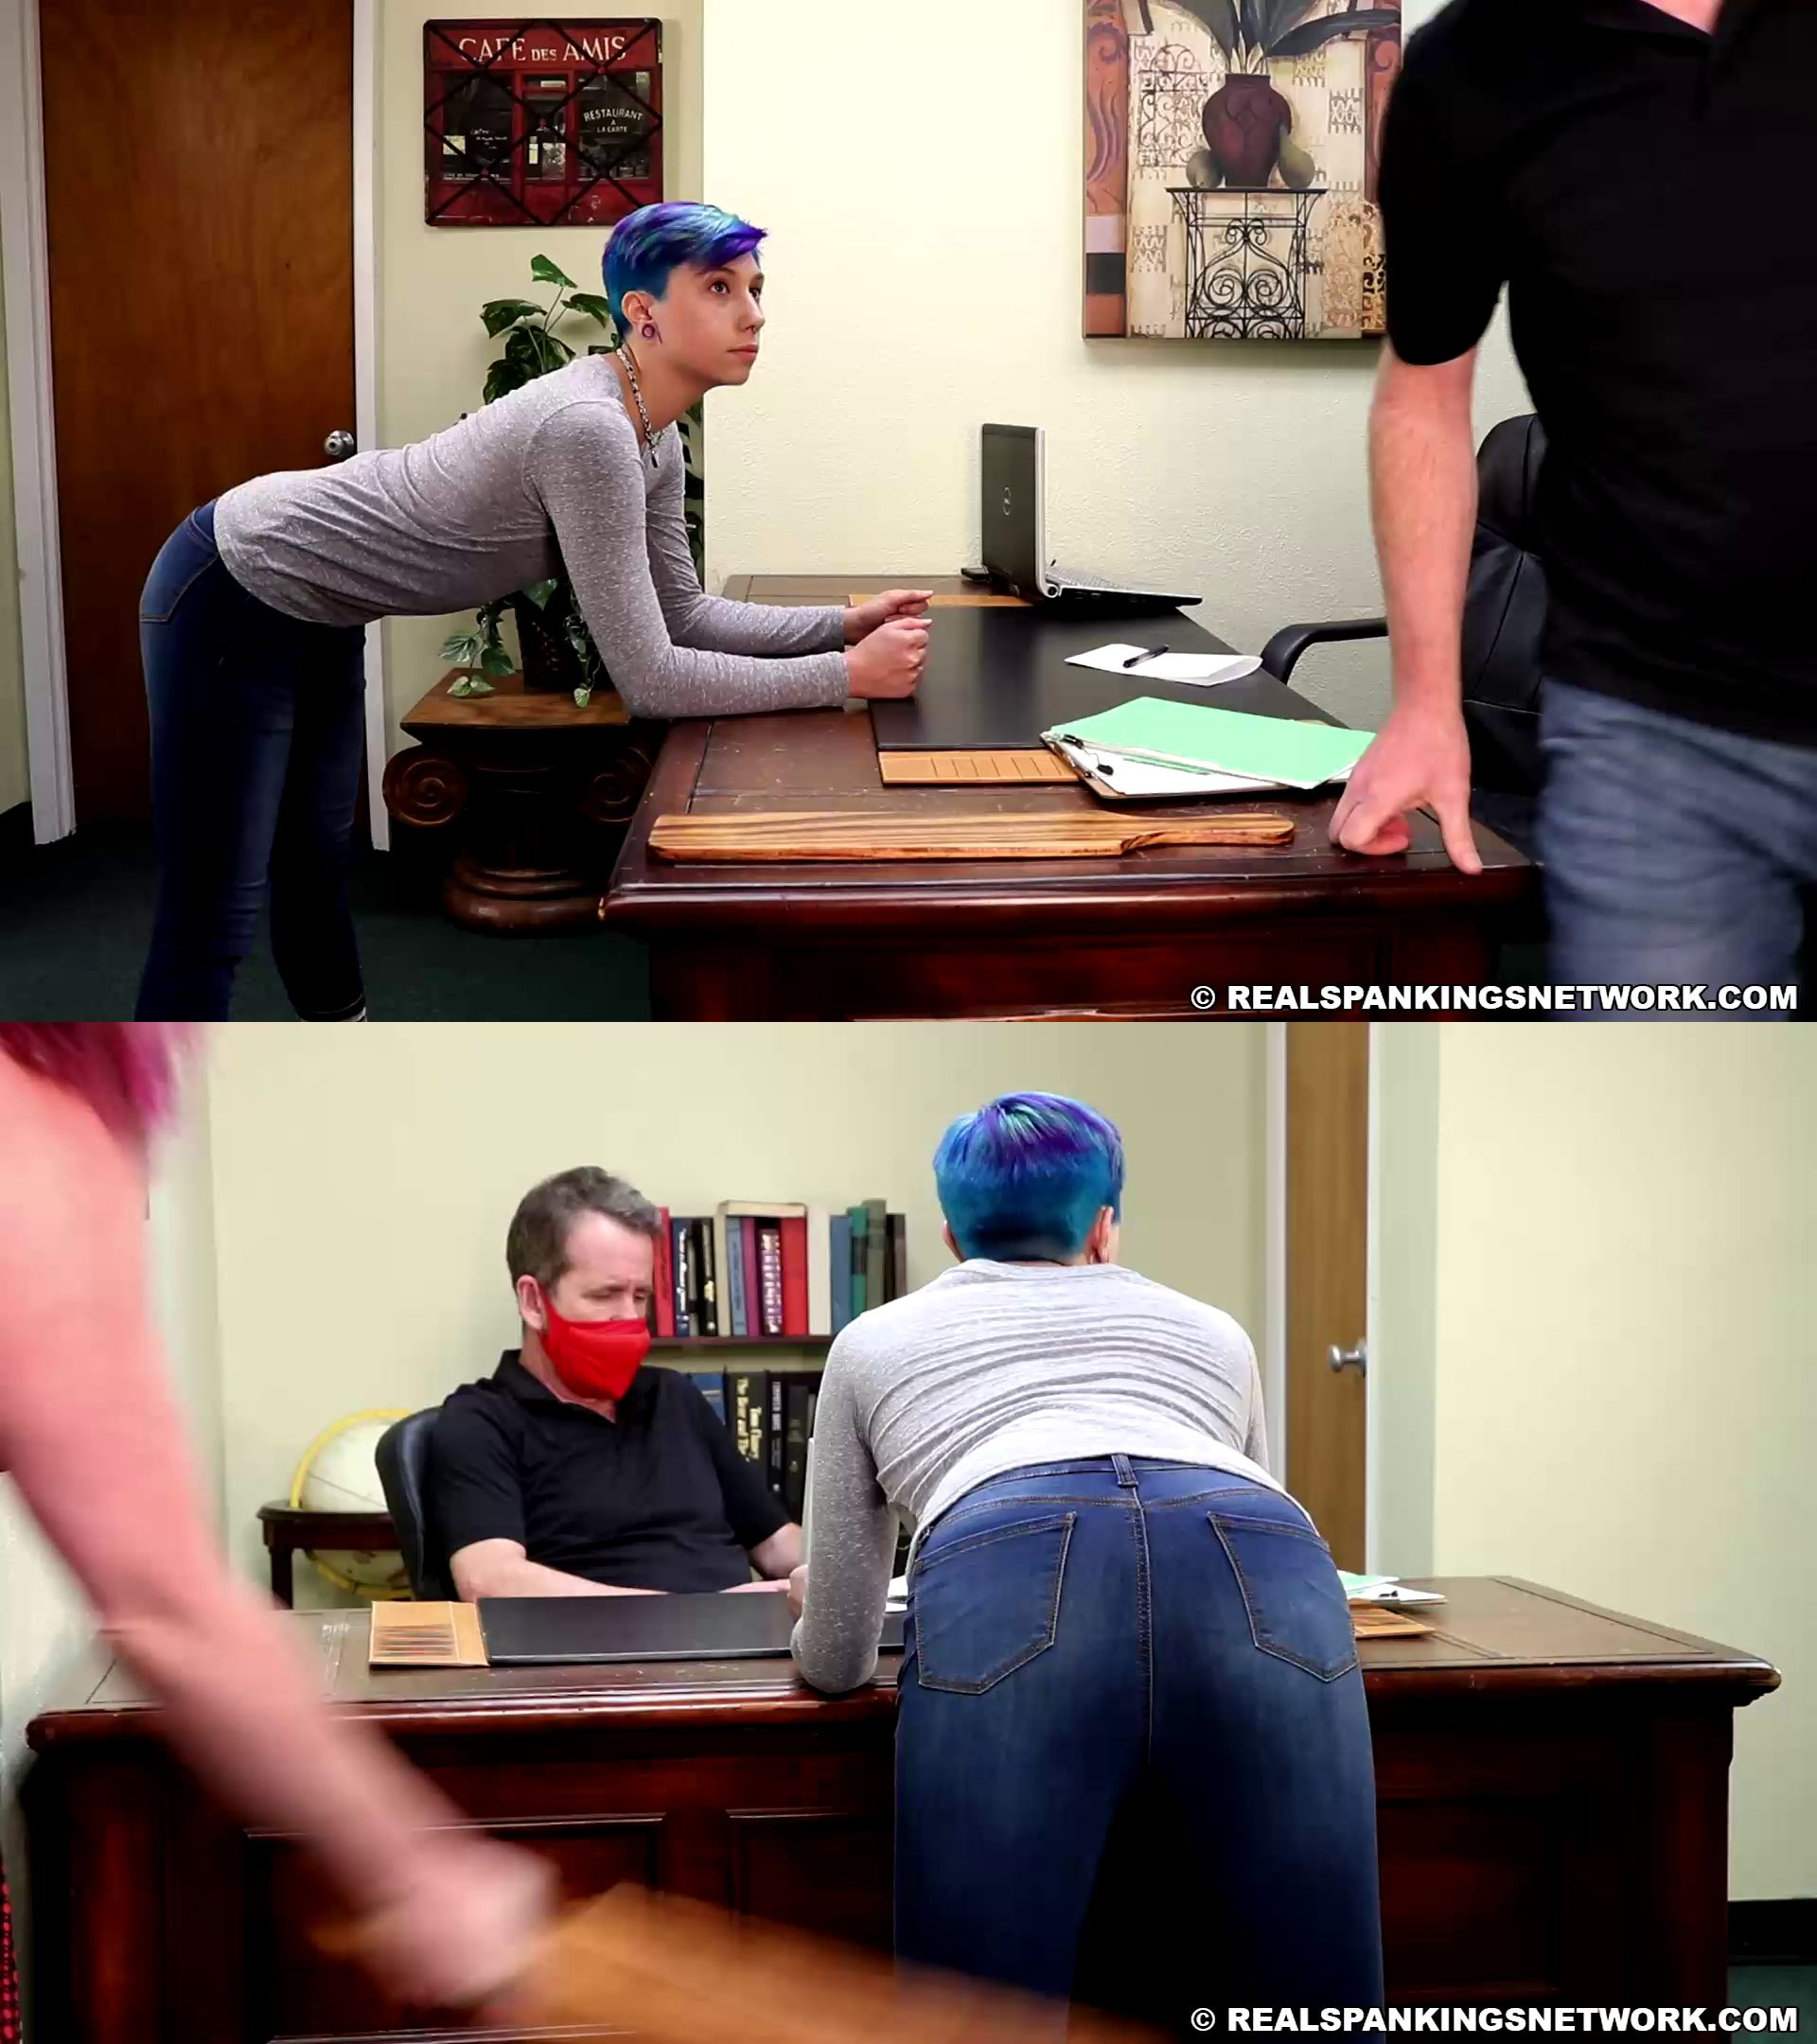 realspankings – MP4/HD – Kaitlynn – Paddled For Leaving Campus